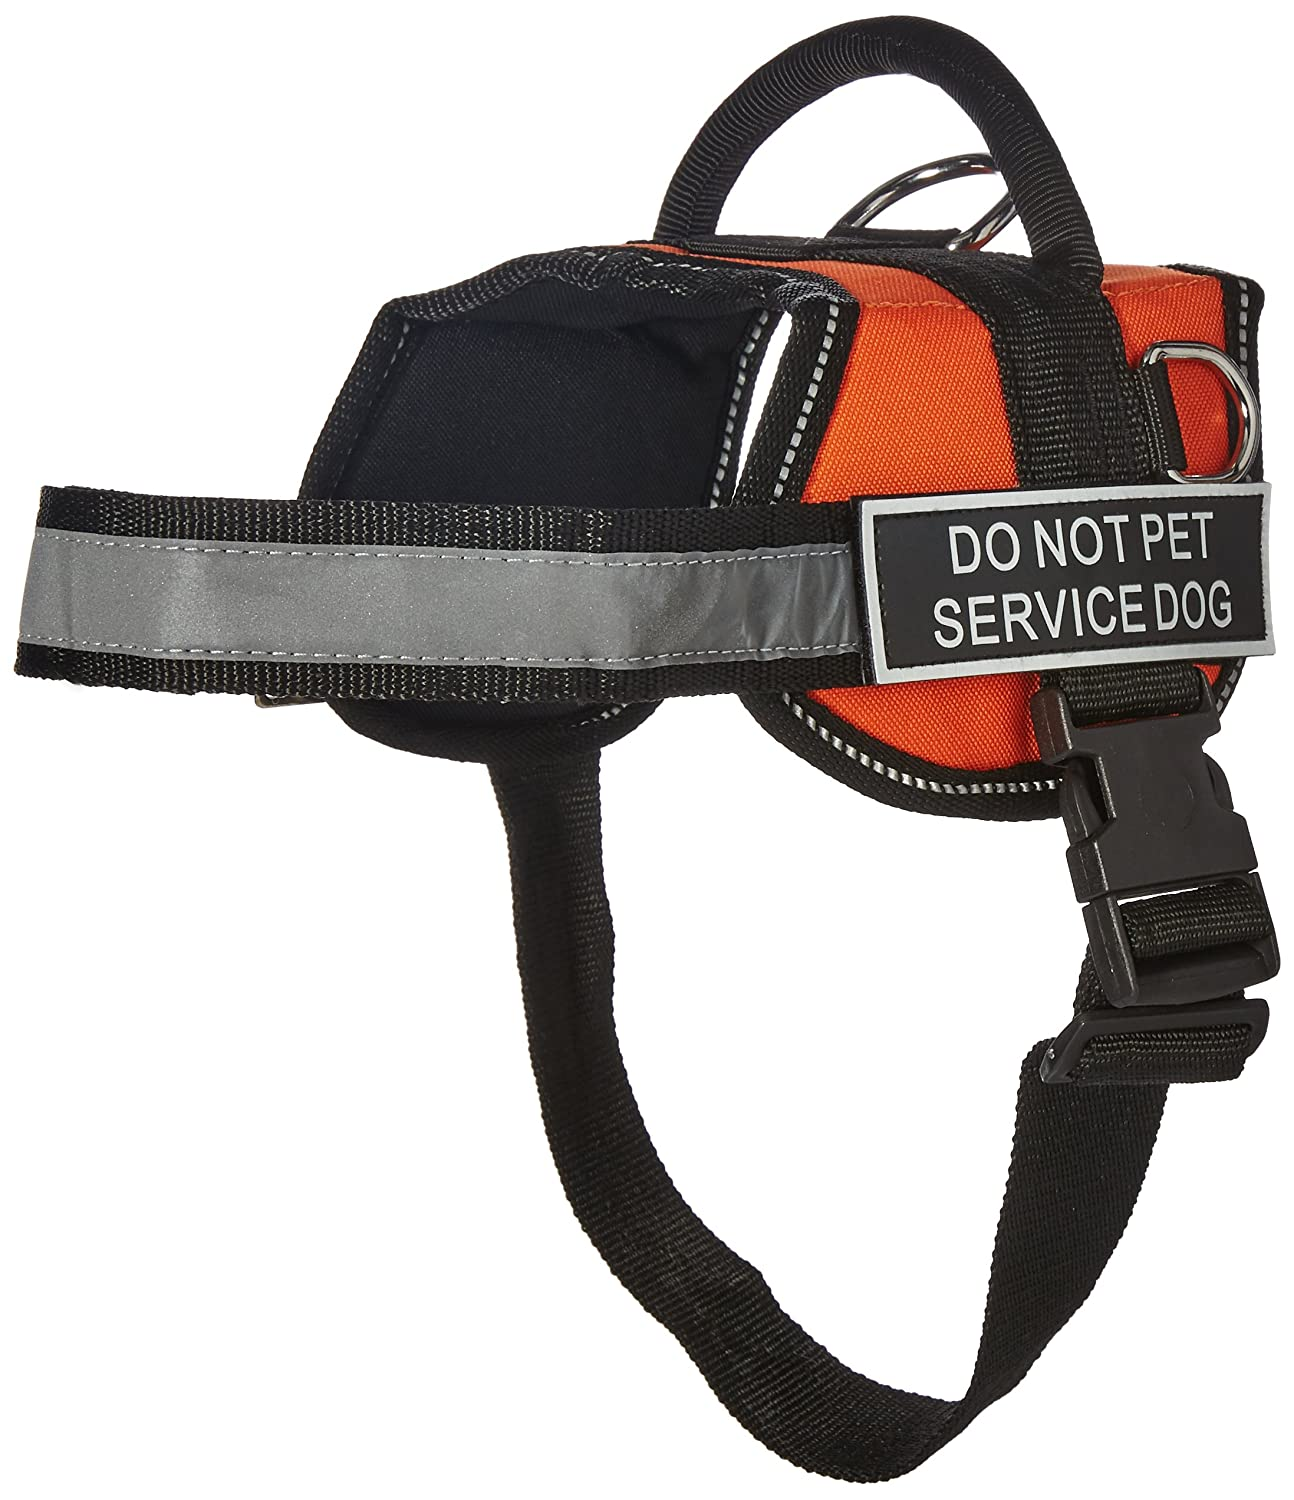 Dean & Tyler Works Do Not Pet Service Dog Pet Harness, Small, Fits Girth Size  25 to 34-Inch, orange Black